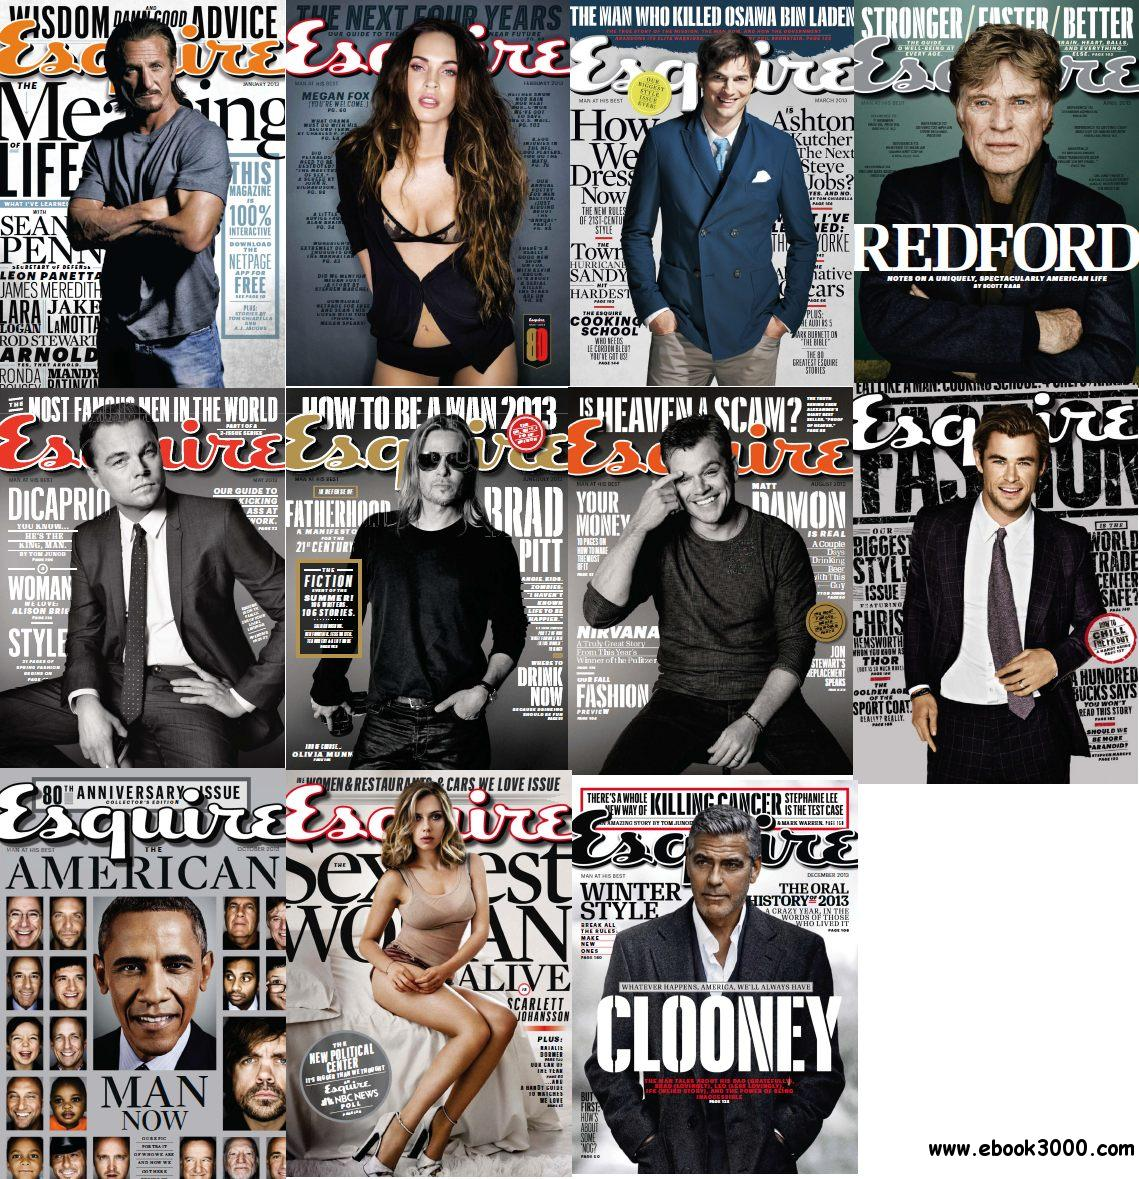 Esquire USA - Full Year 2013 Issues Collection free download